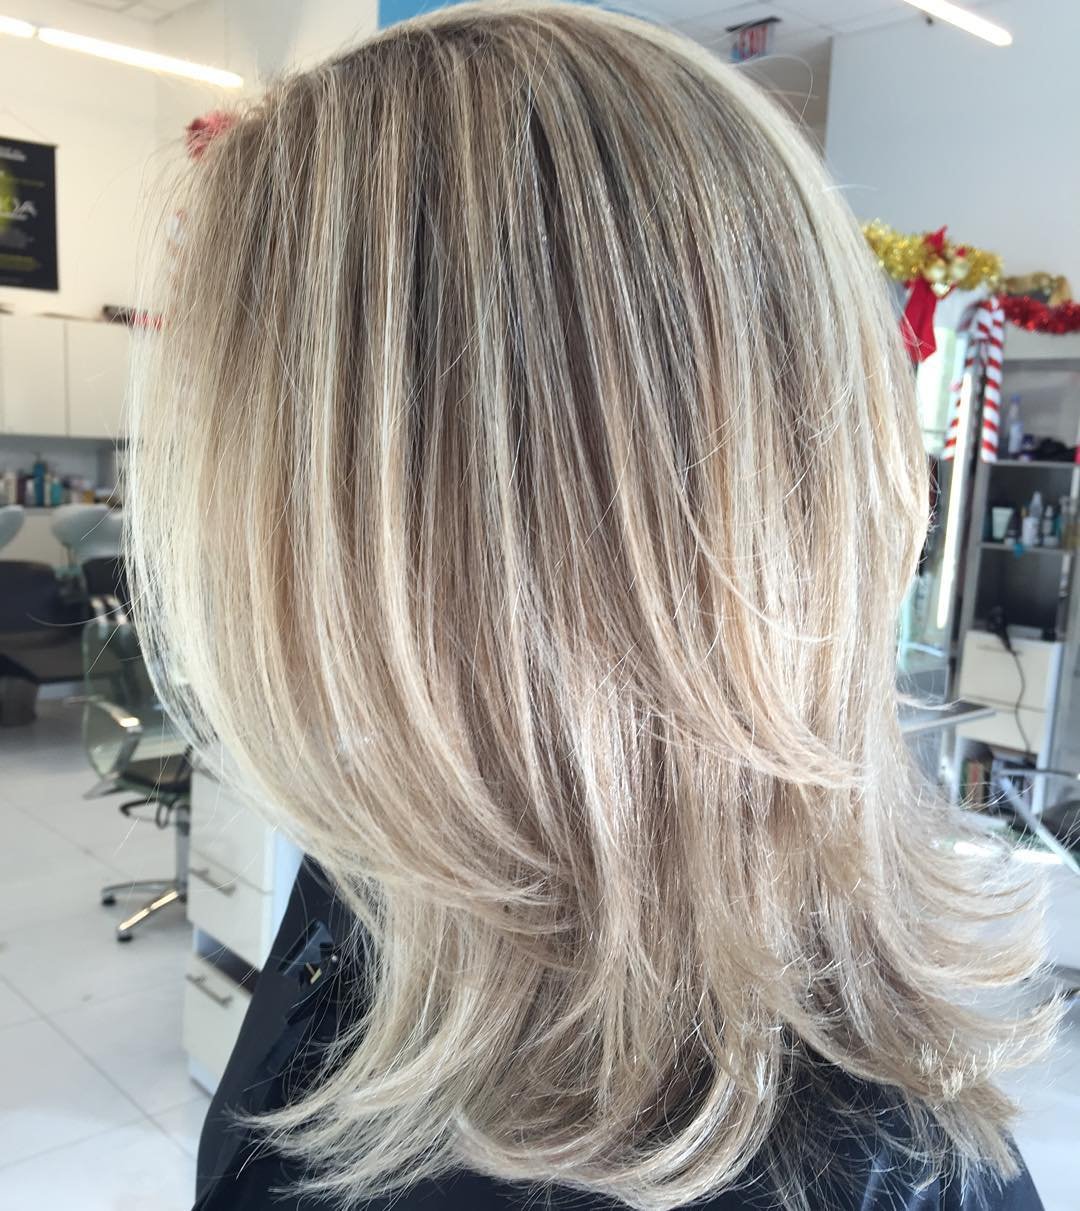 Medium Two-Layer Blonde Hairstyle